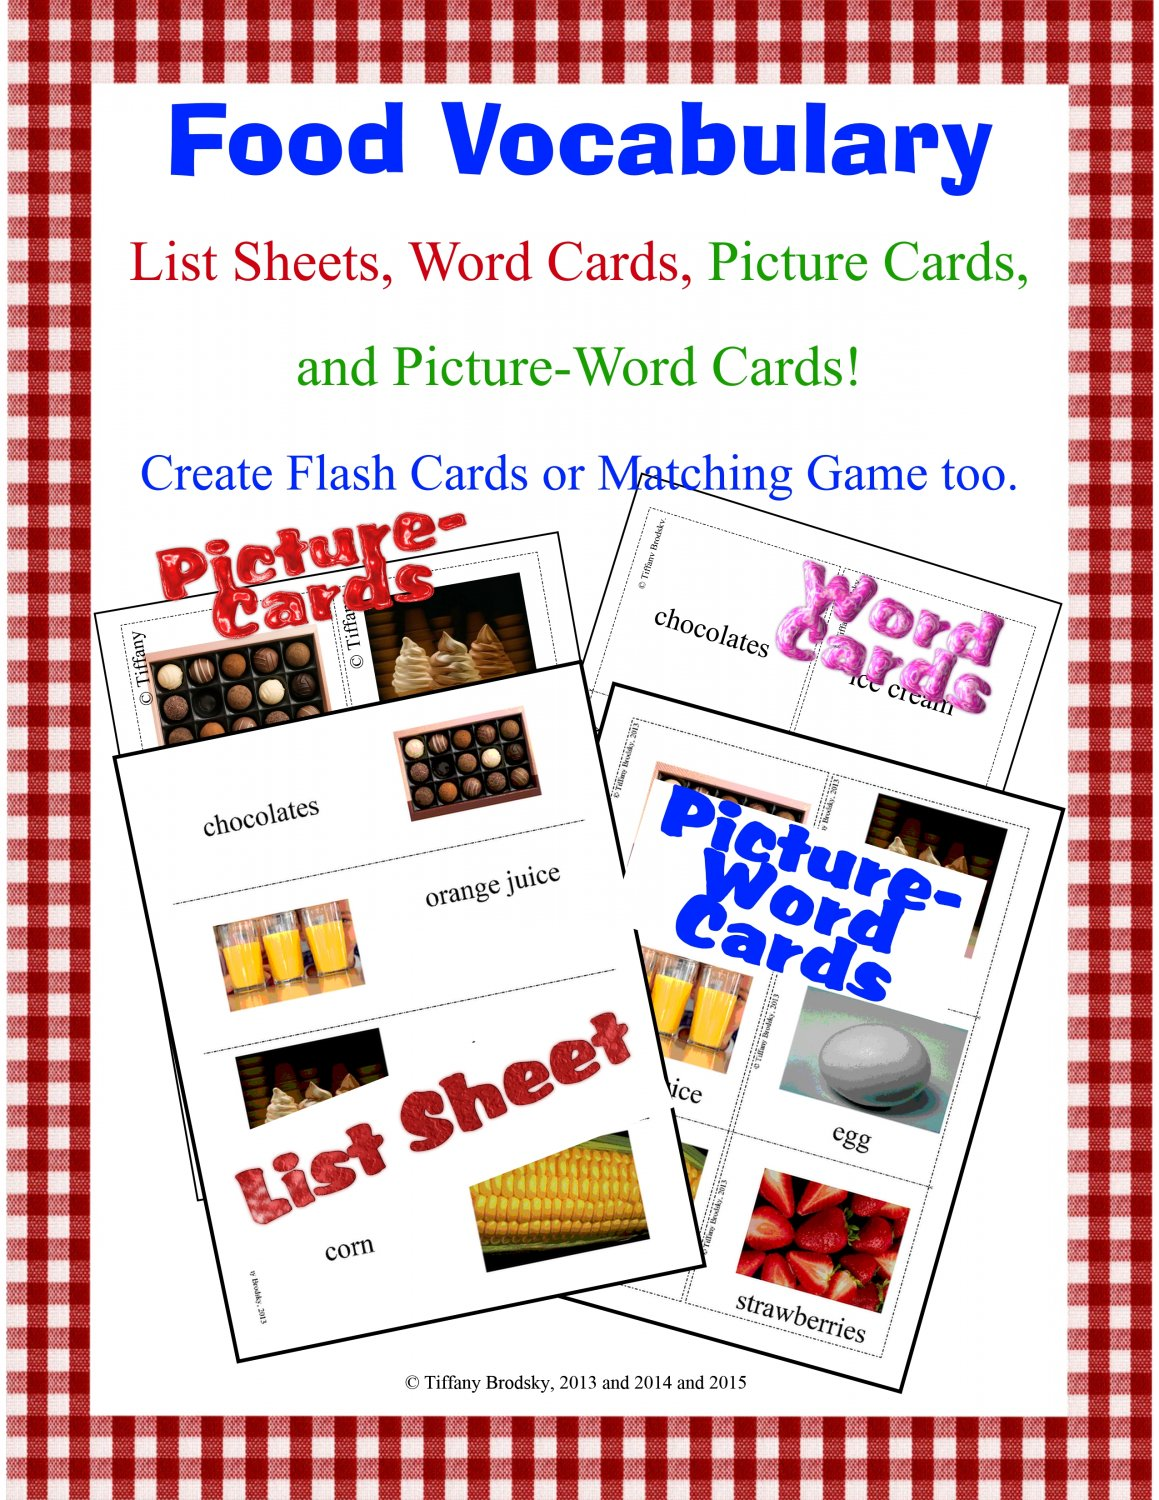 Food Vocabulary Word Cards